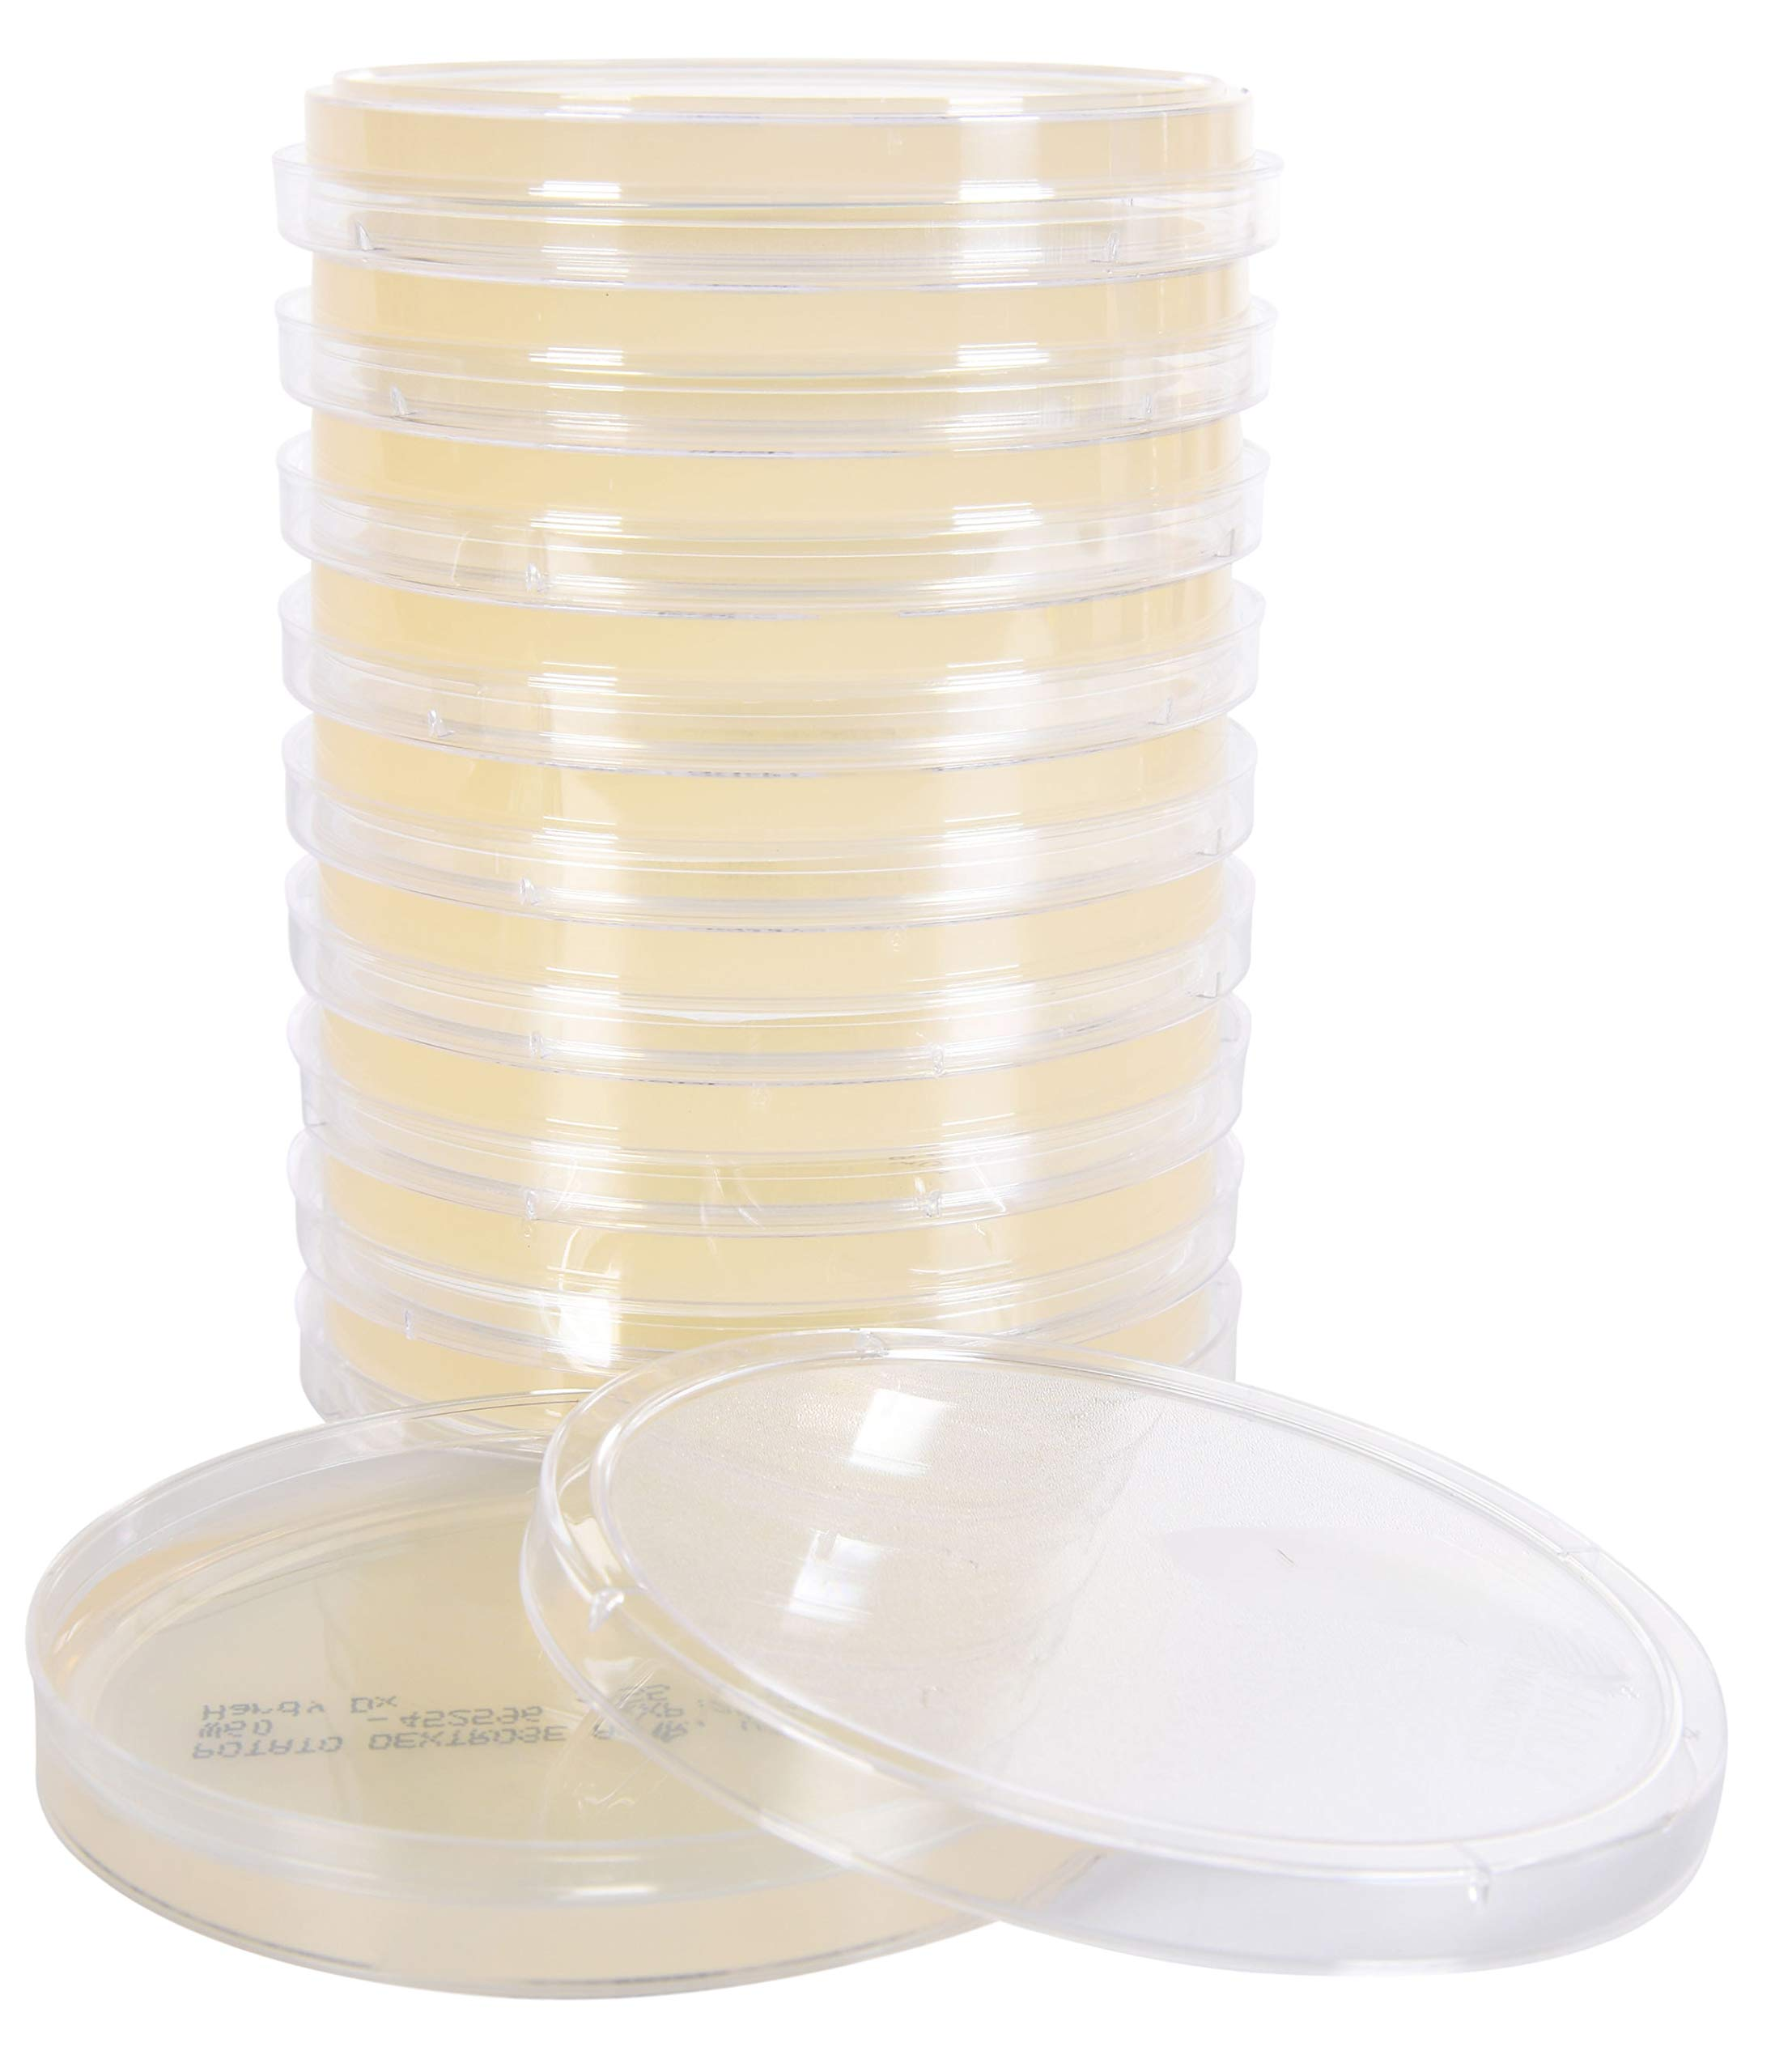 Order by The Package of 10 by Hardy Diagnostics R2A Agar 15x100mm Plate for The Cultivation of Bacteria from Water Samples